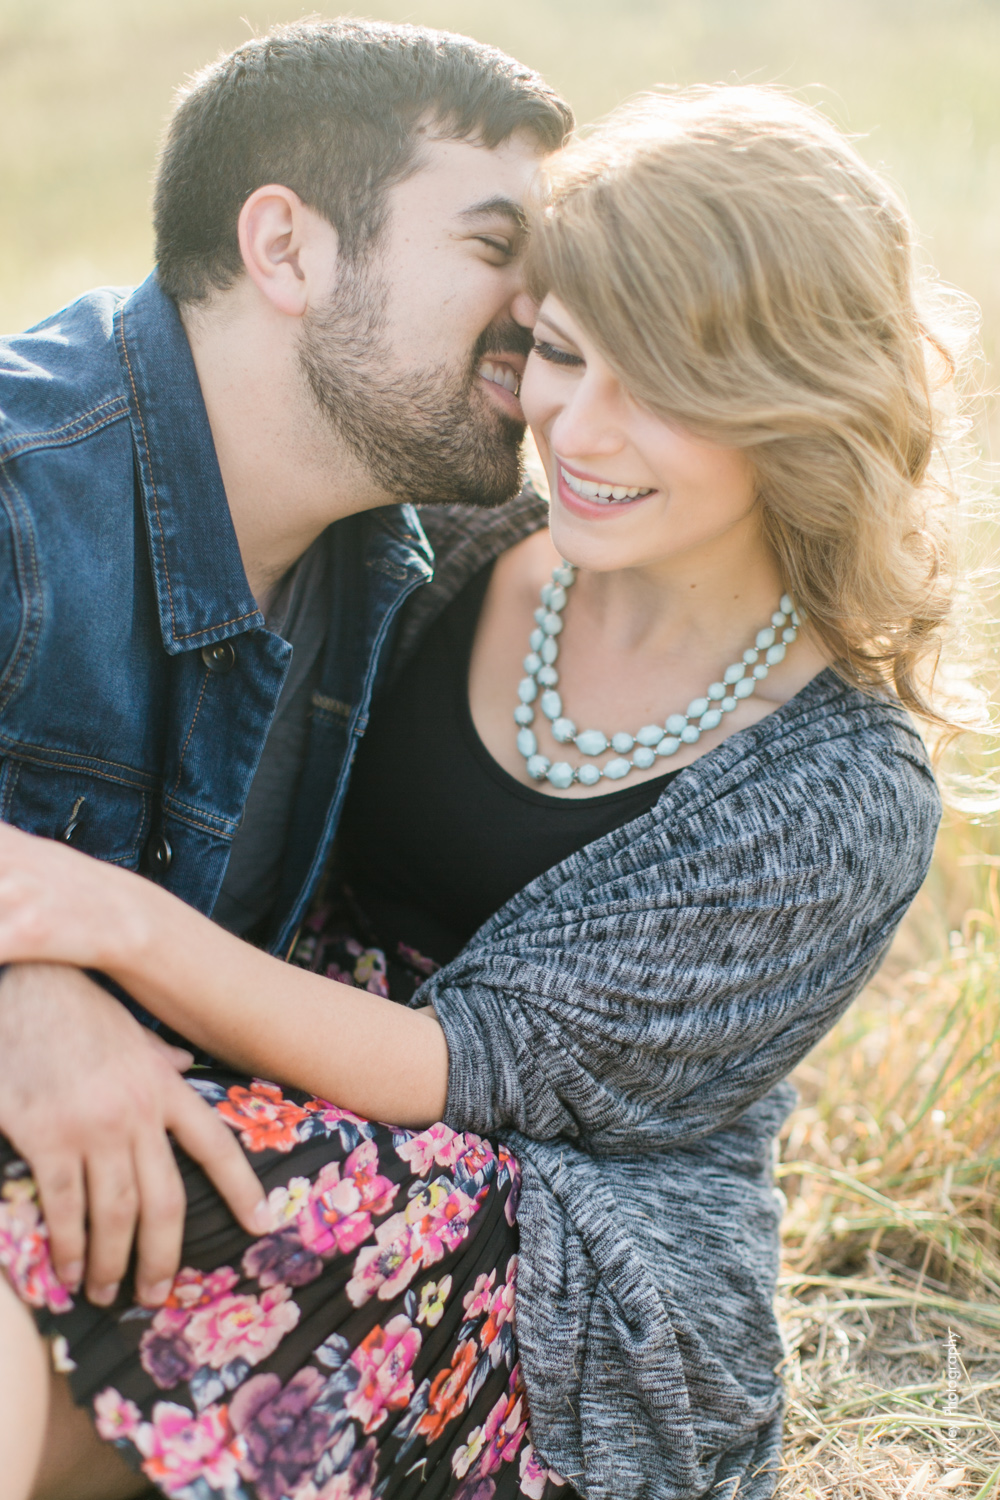 malibu engagement photography los angeles wedding photographer candid indie field mountains wildflowers-1090